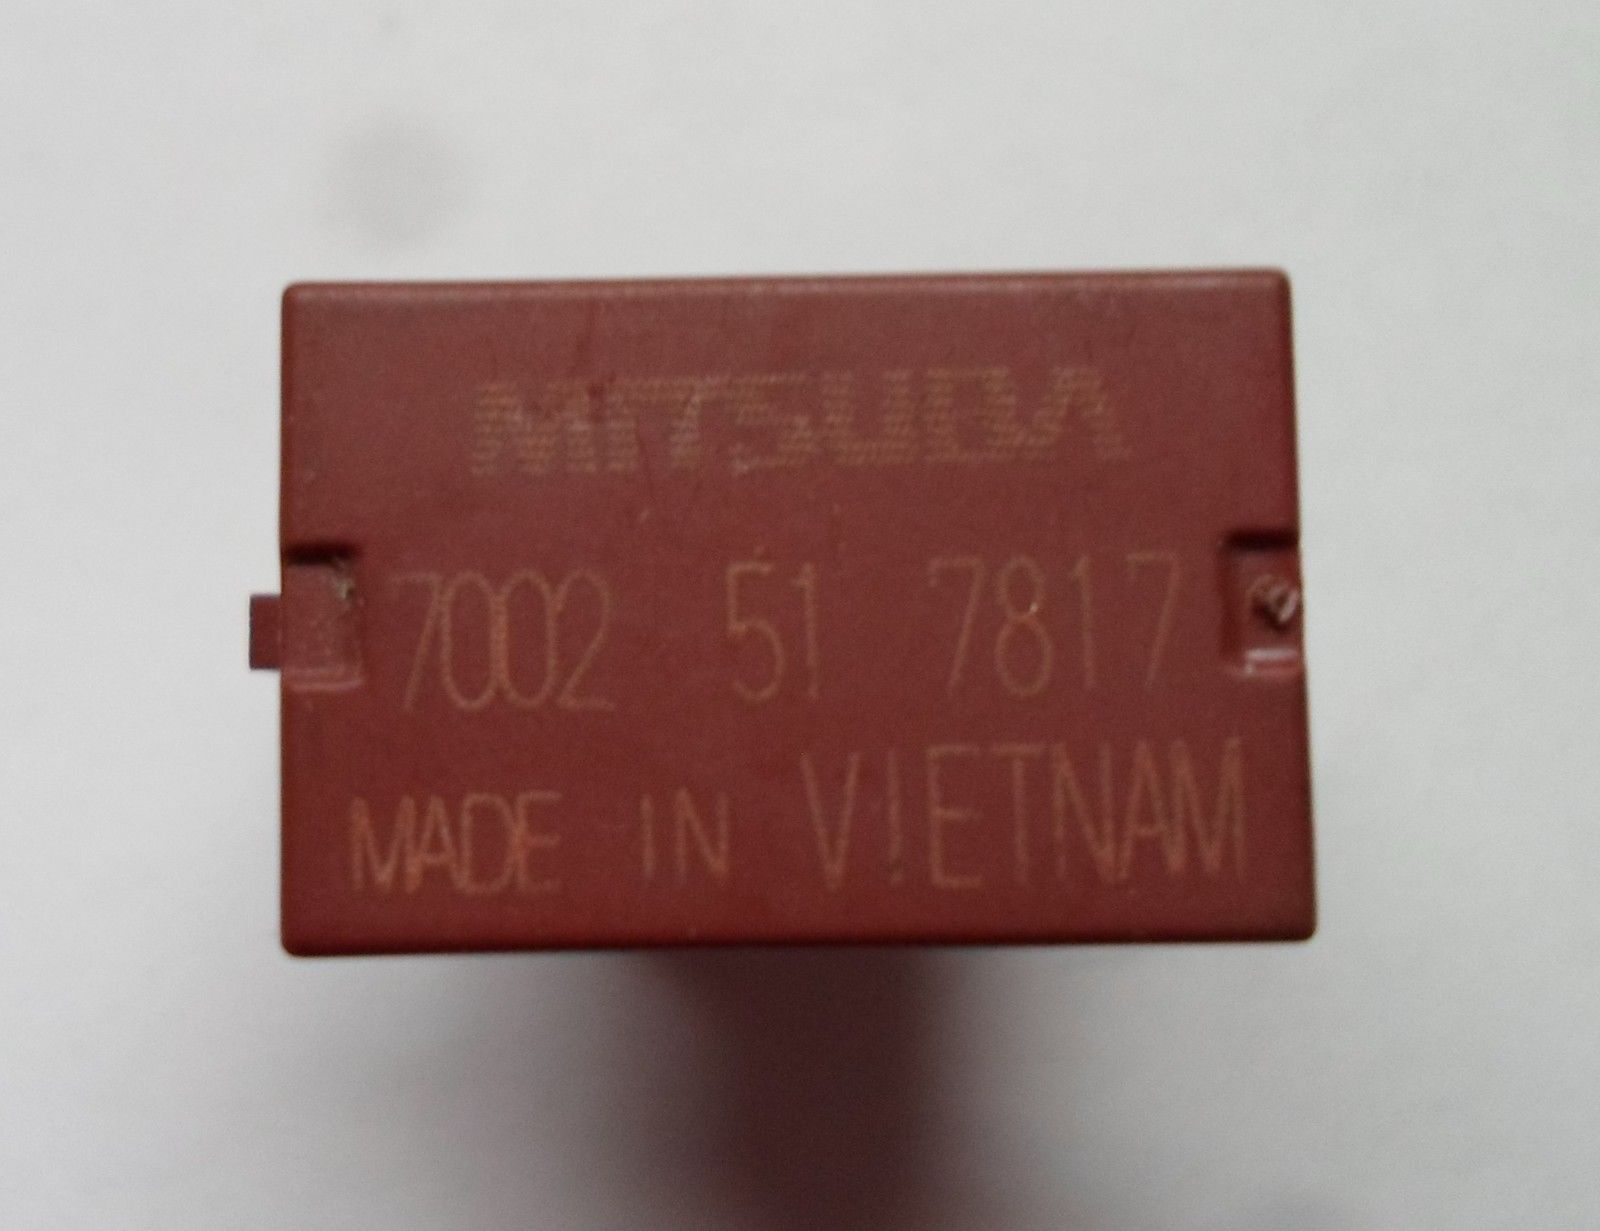 HONDA MITSUBA 7002 51 7817  OEM RELAY TESTED  FREE SHIPPING 6 MONTH WARRANTY! H1